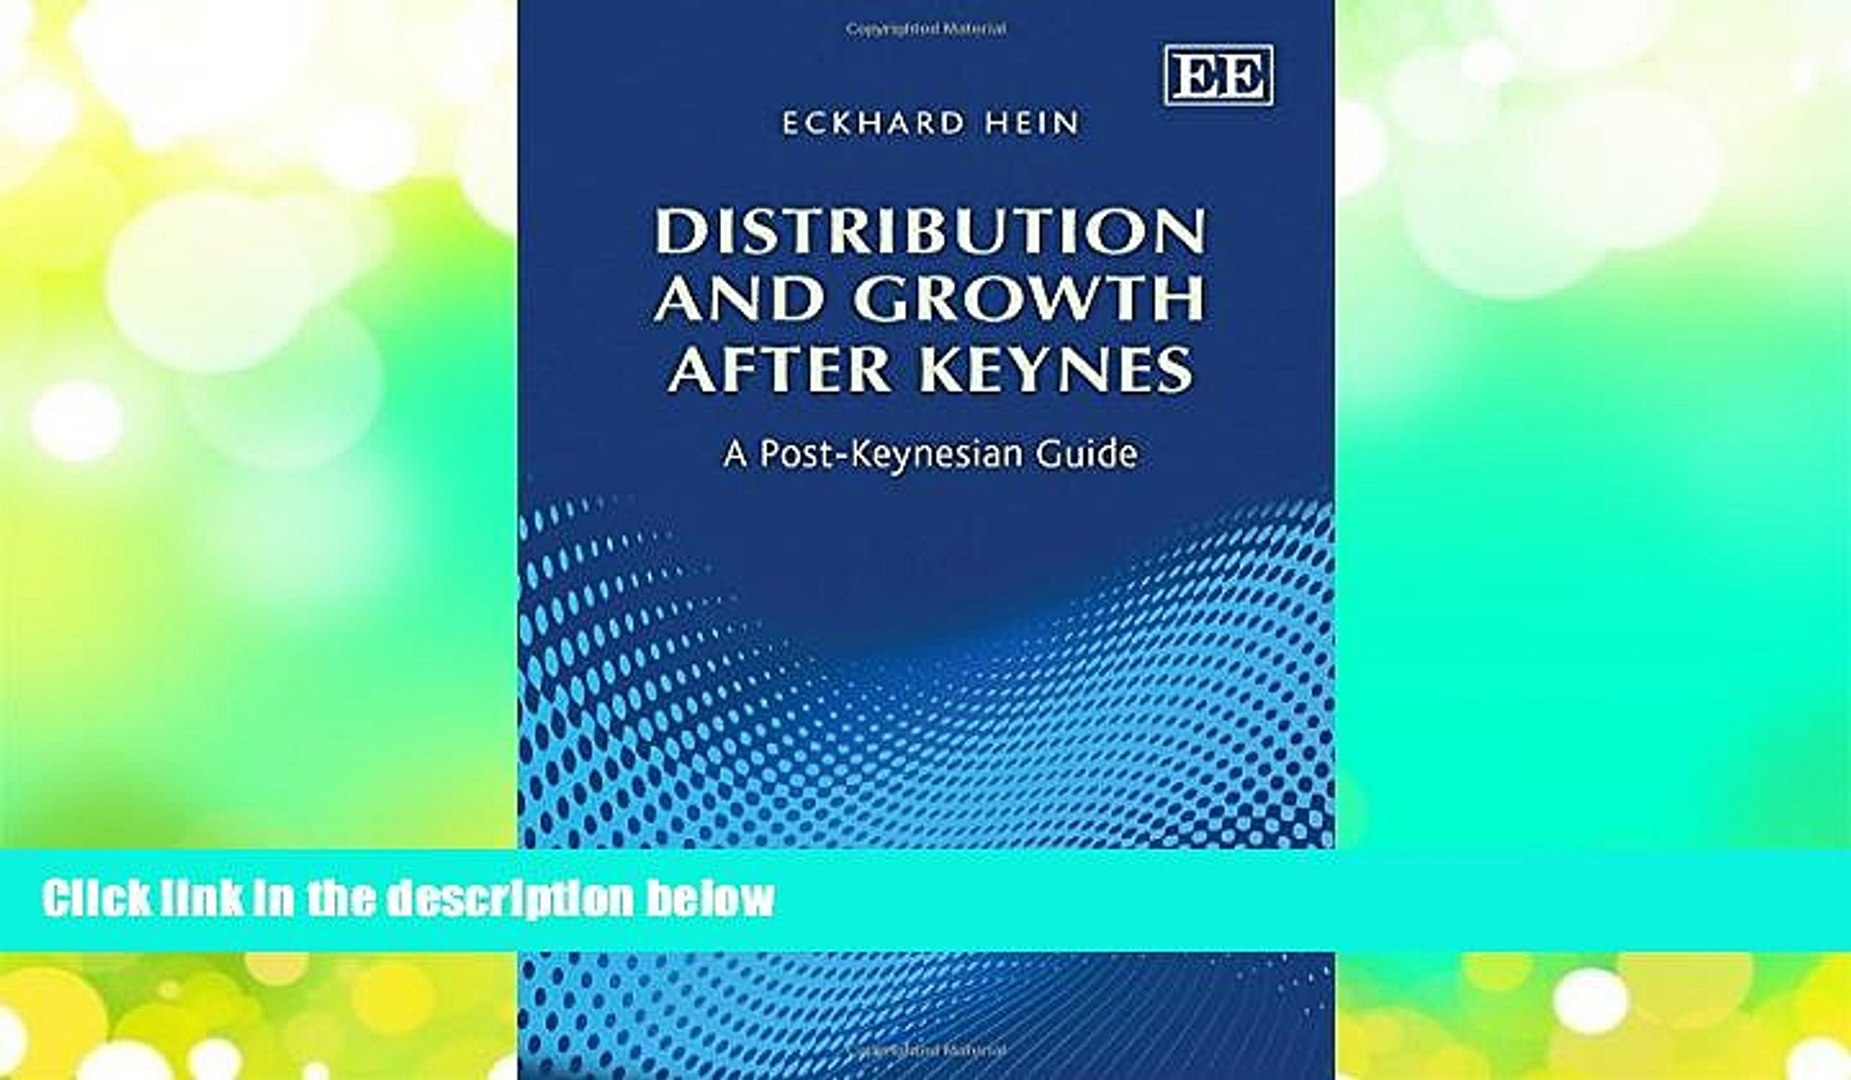 Distribution and Growth after Keynes: A Post-Keynesian Guide